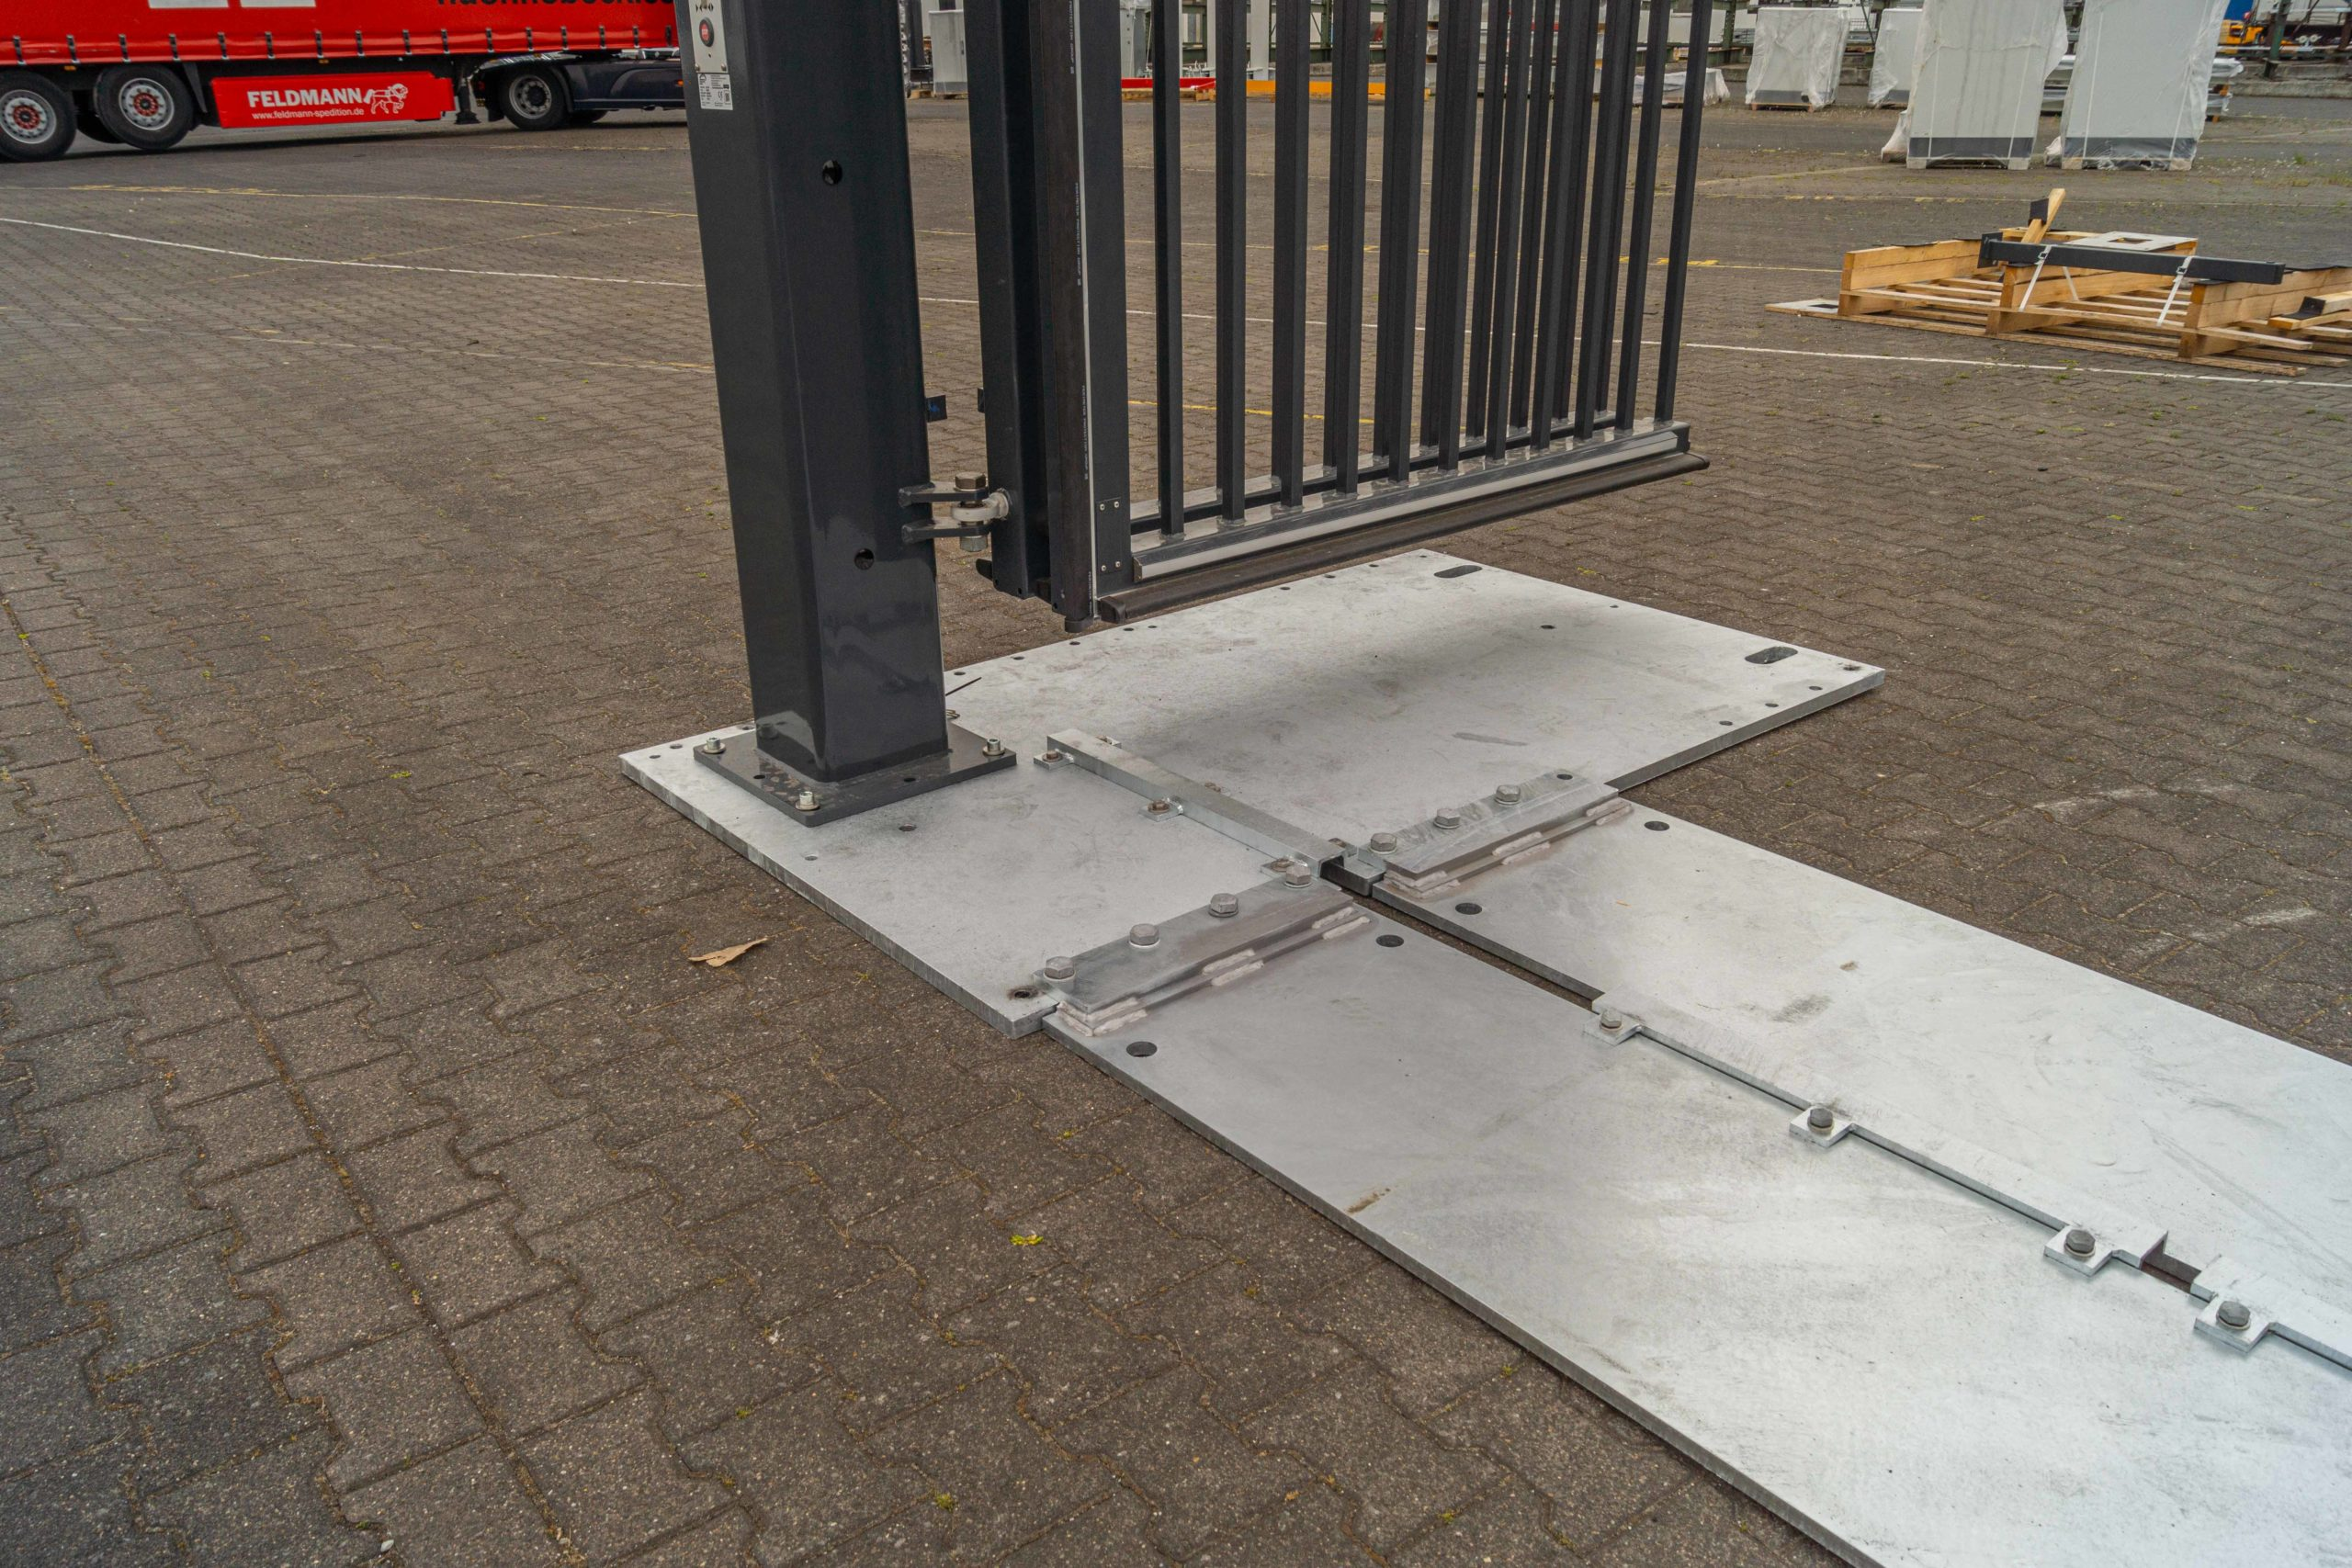 PPG EntraQuick Mobile - ground plate